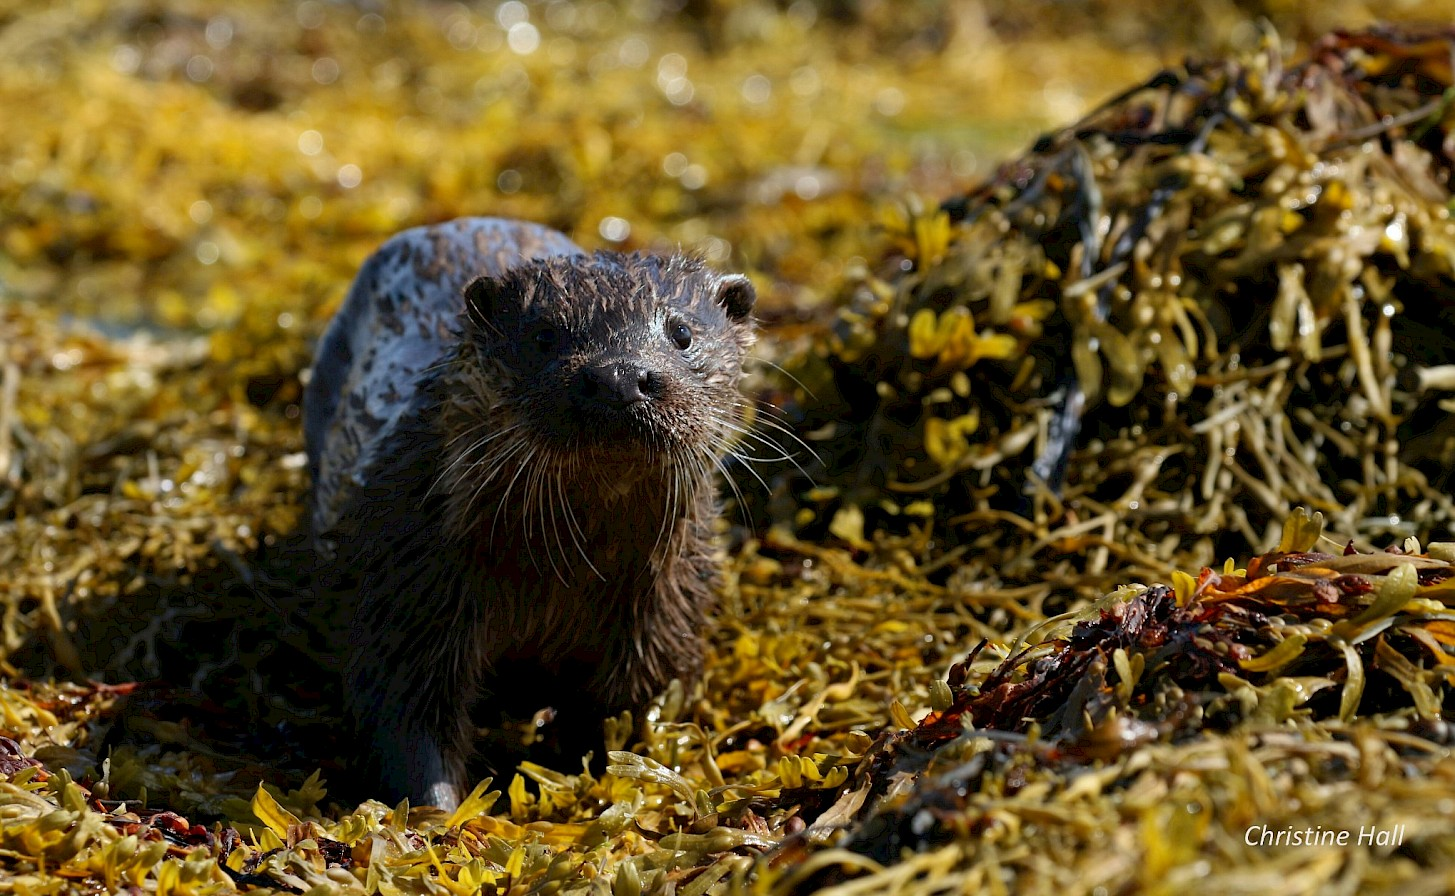 Close encounter with an otter in Westray - image by Christine Hall